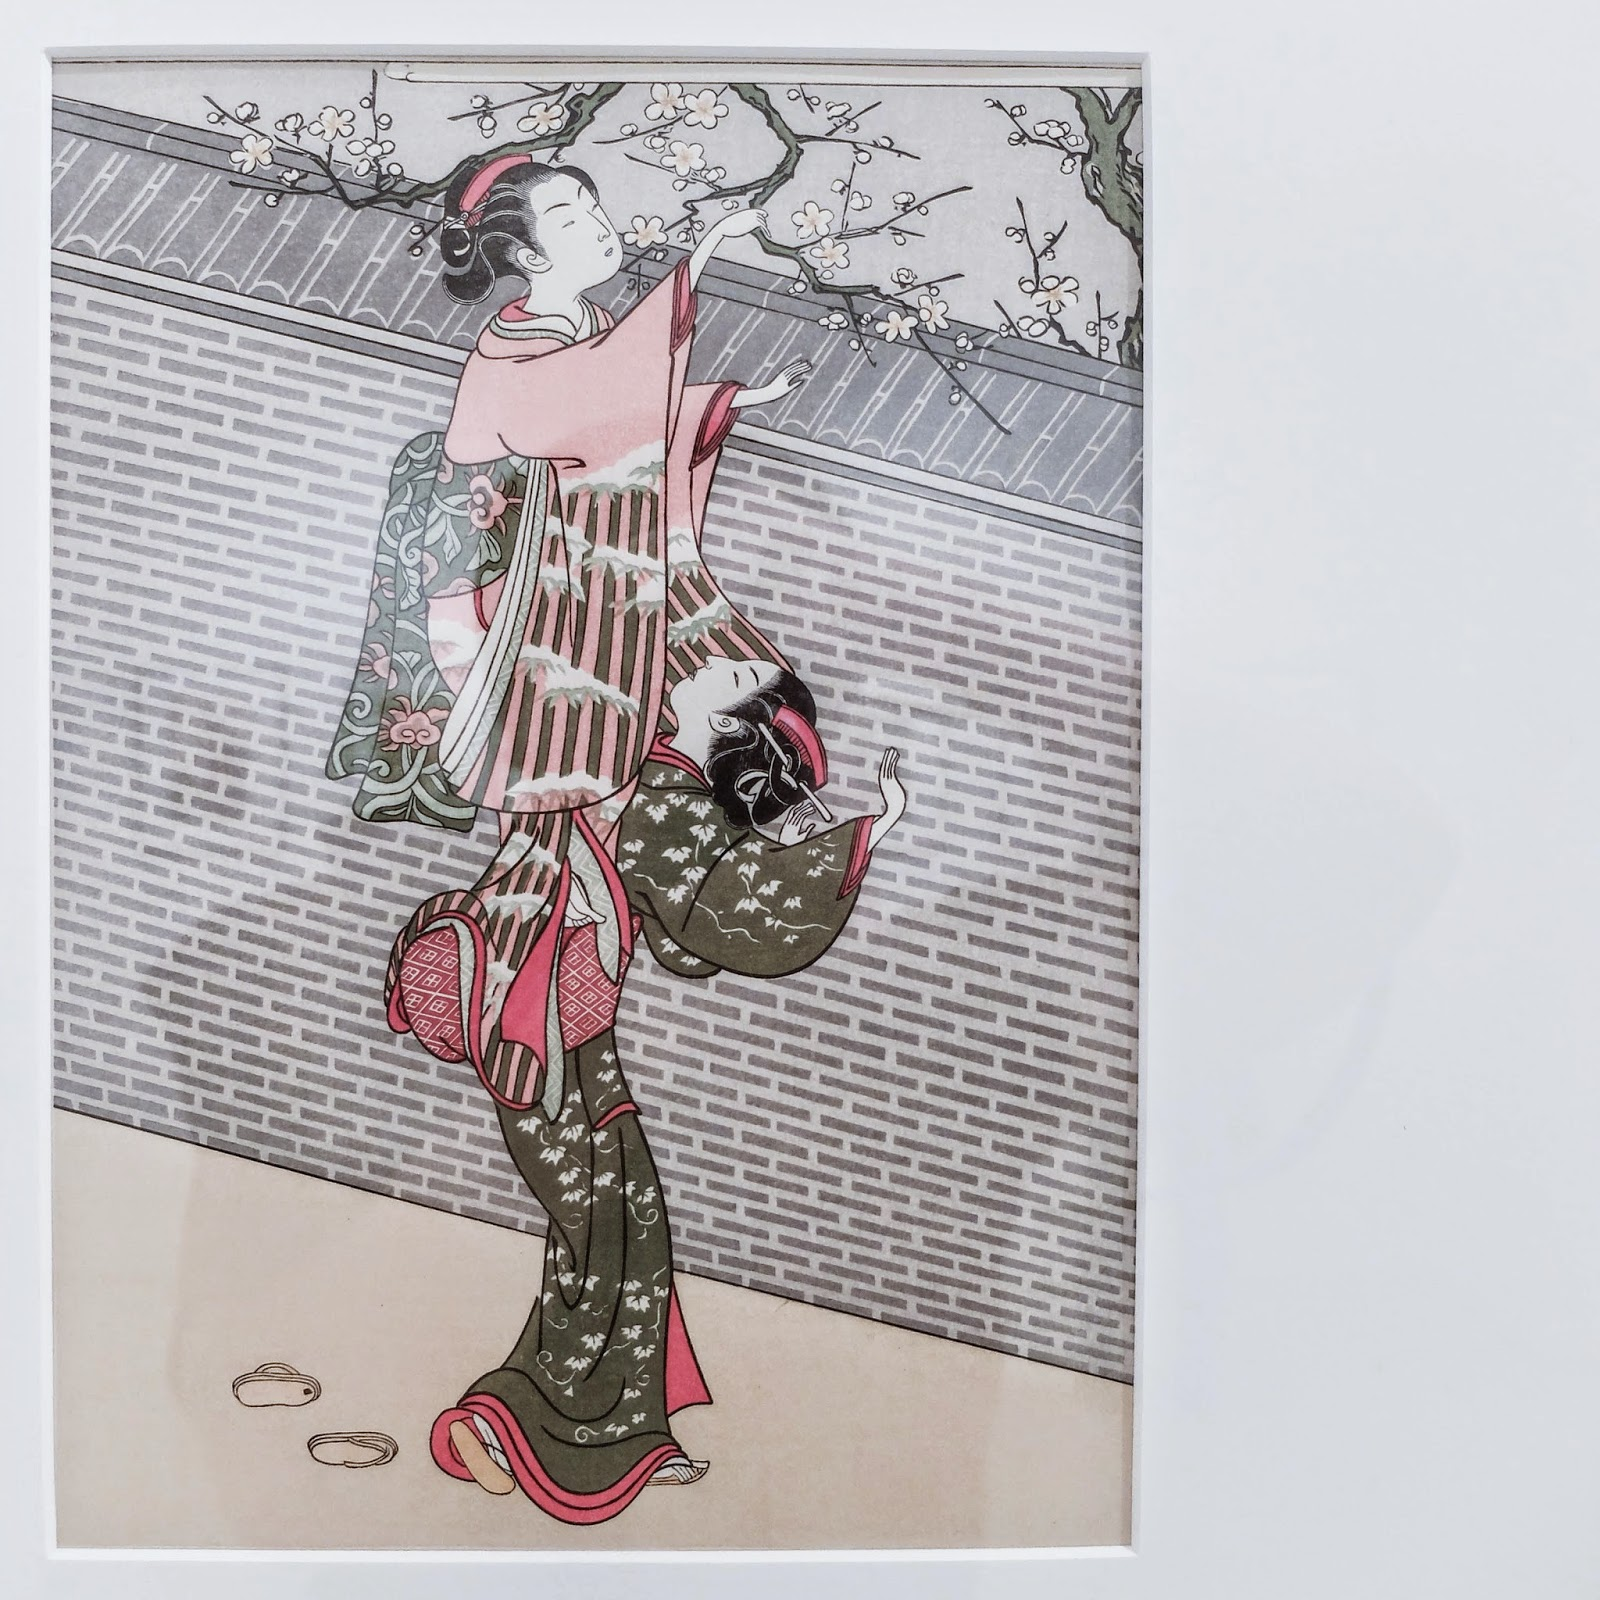 Ukiyoe Portraits exhibit - Picking Plum Blossoms from Neighbor's Garden by Harunobu Suzuki